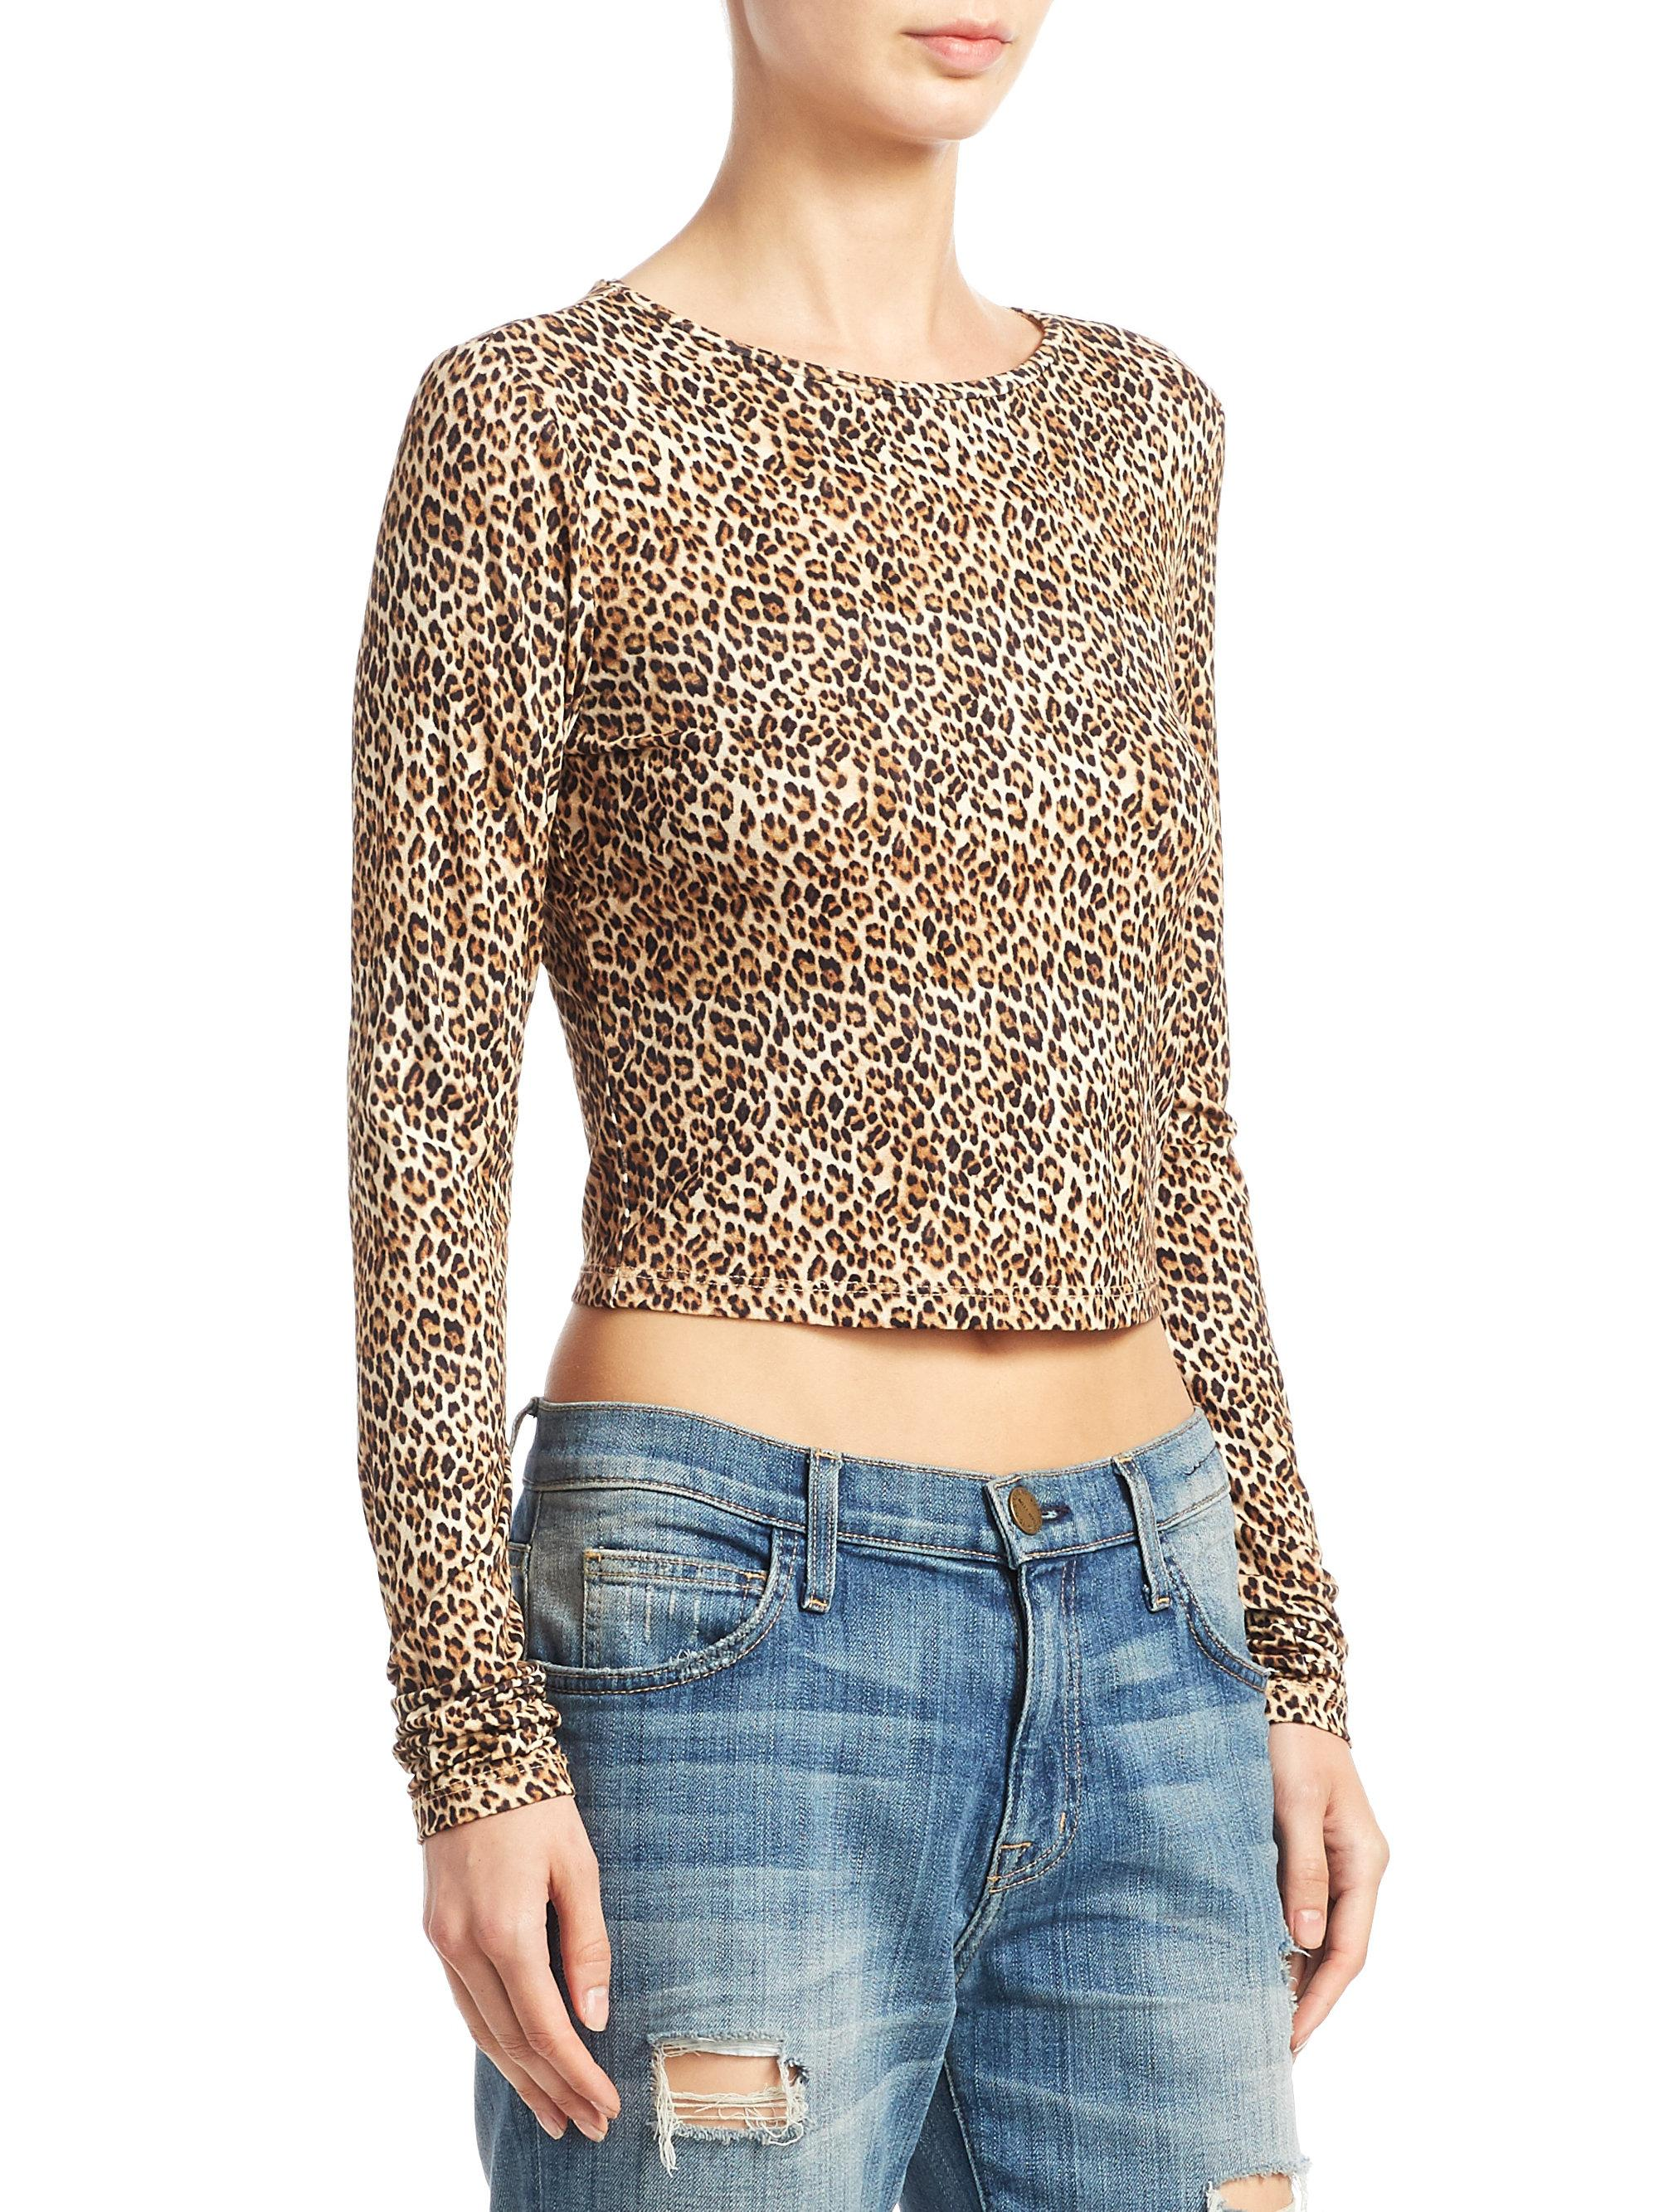 d2a29e8f085b Alice + Olivia Delaina Leopard Cropped Top in Brown - Lyst